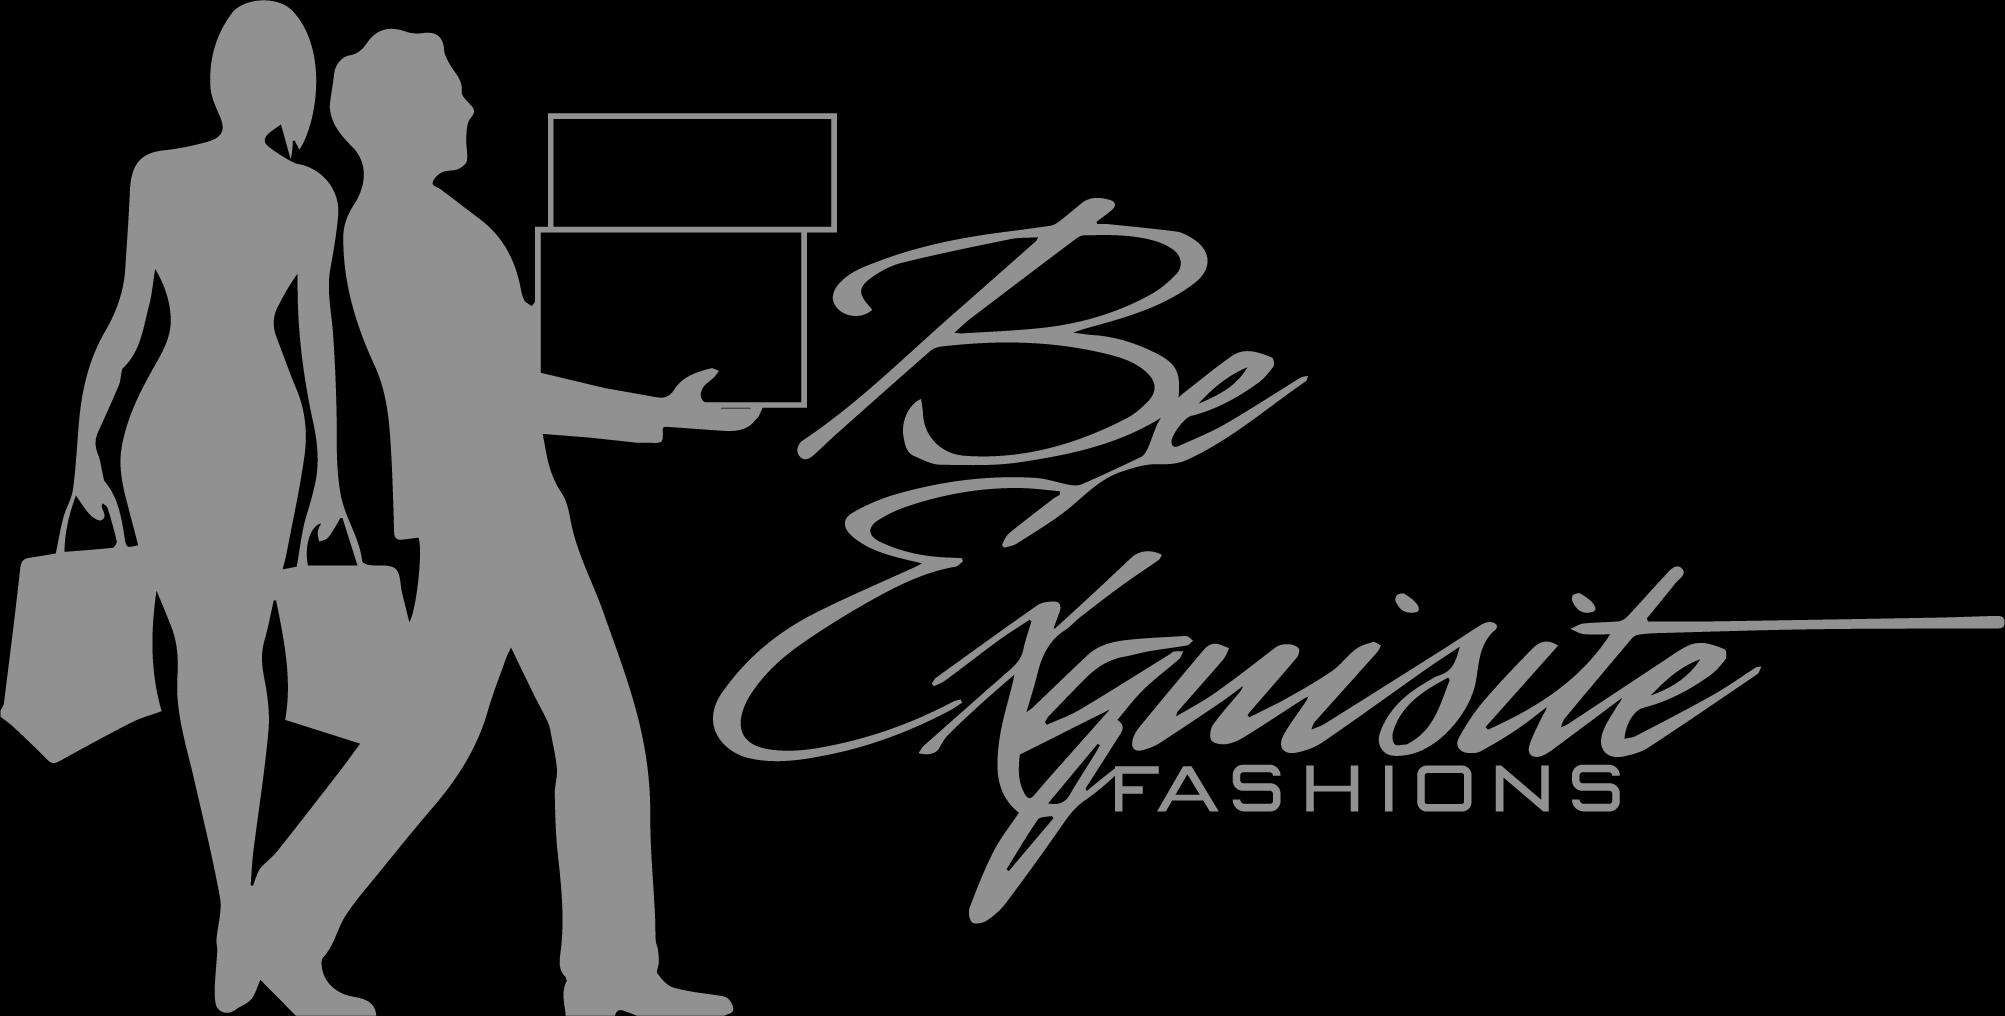 Be Exquisite Fashions